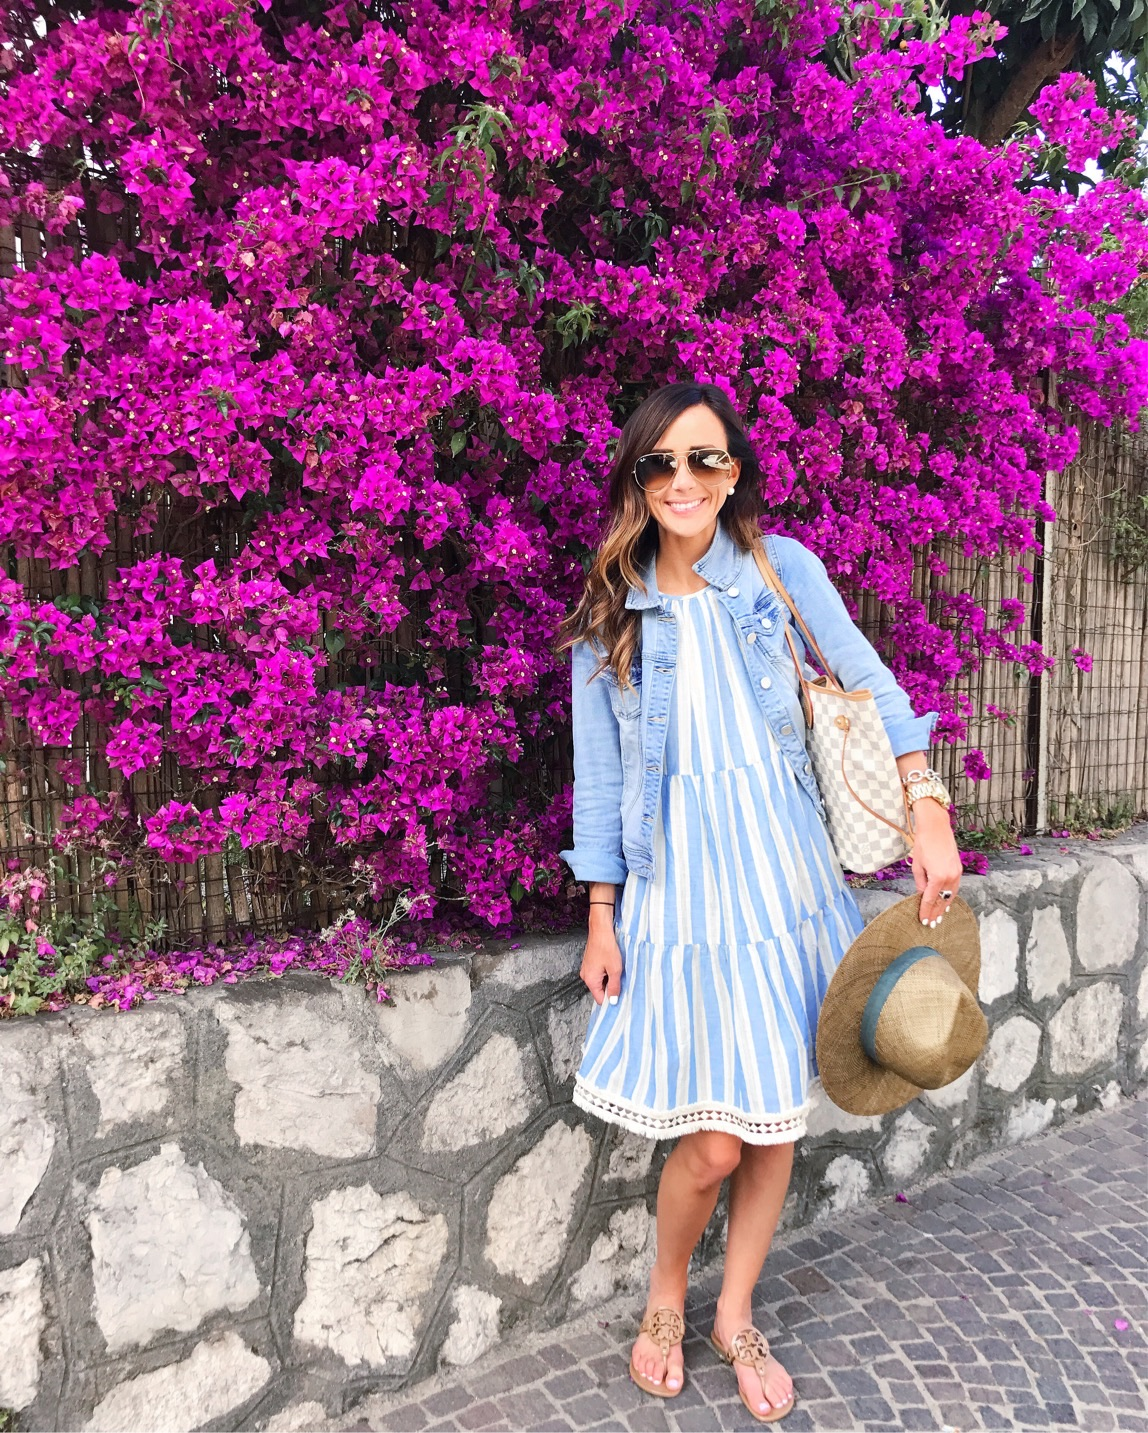 sorrento, italy, bougainvillea, stripe swing dress, jean jacket, alyson haley, aviator sunglasses